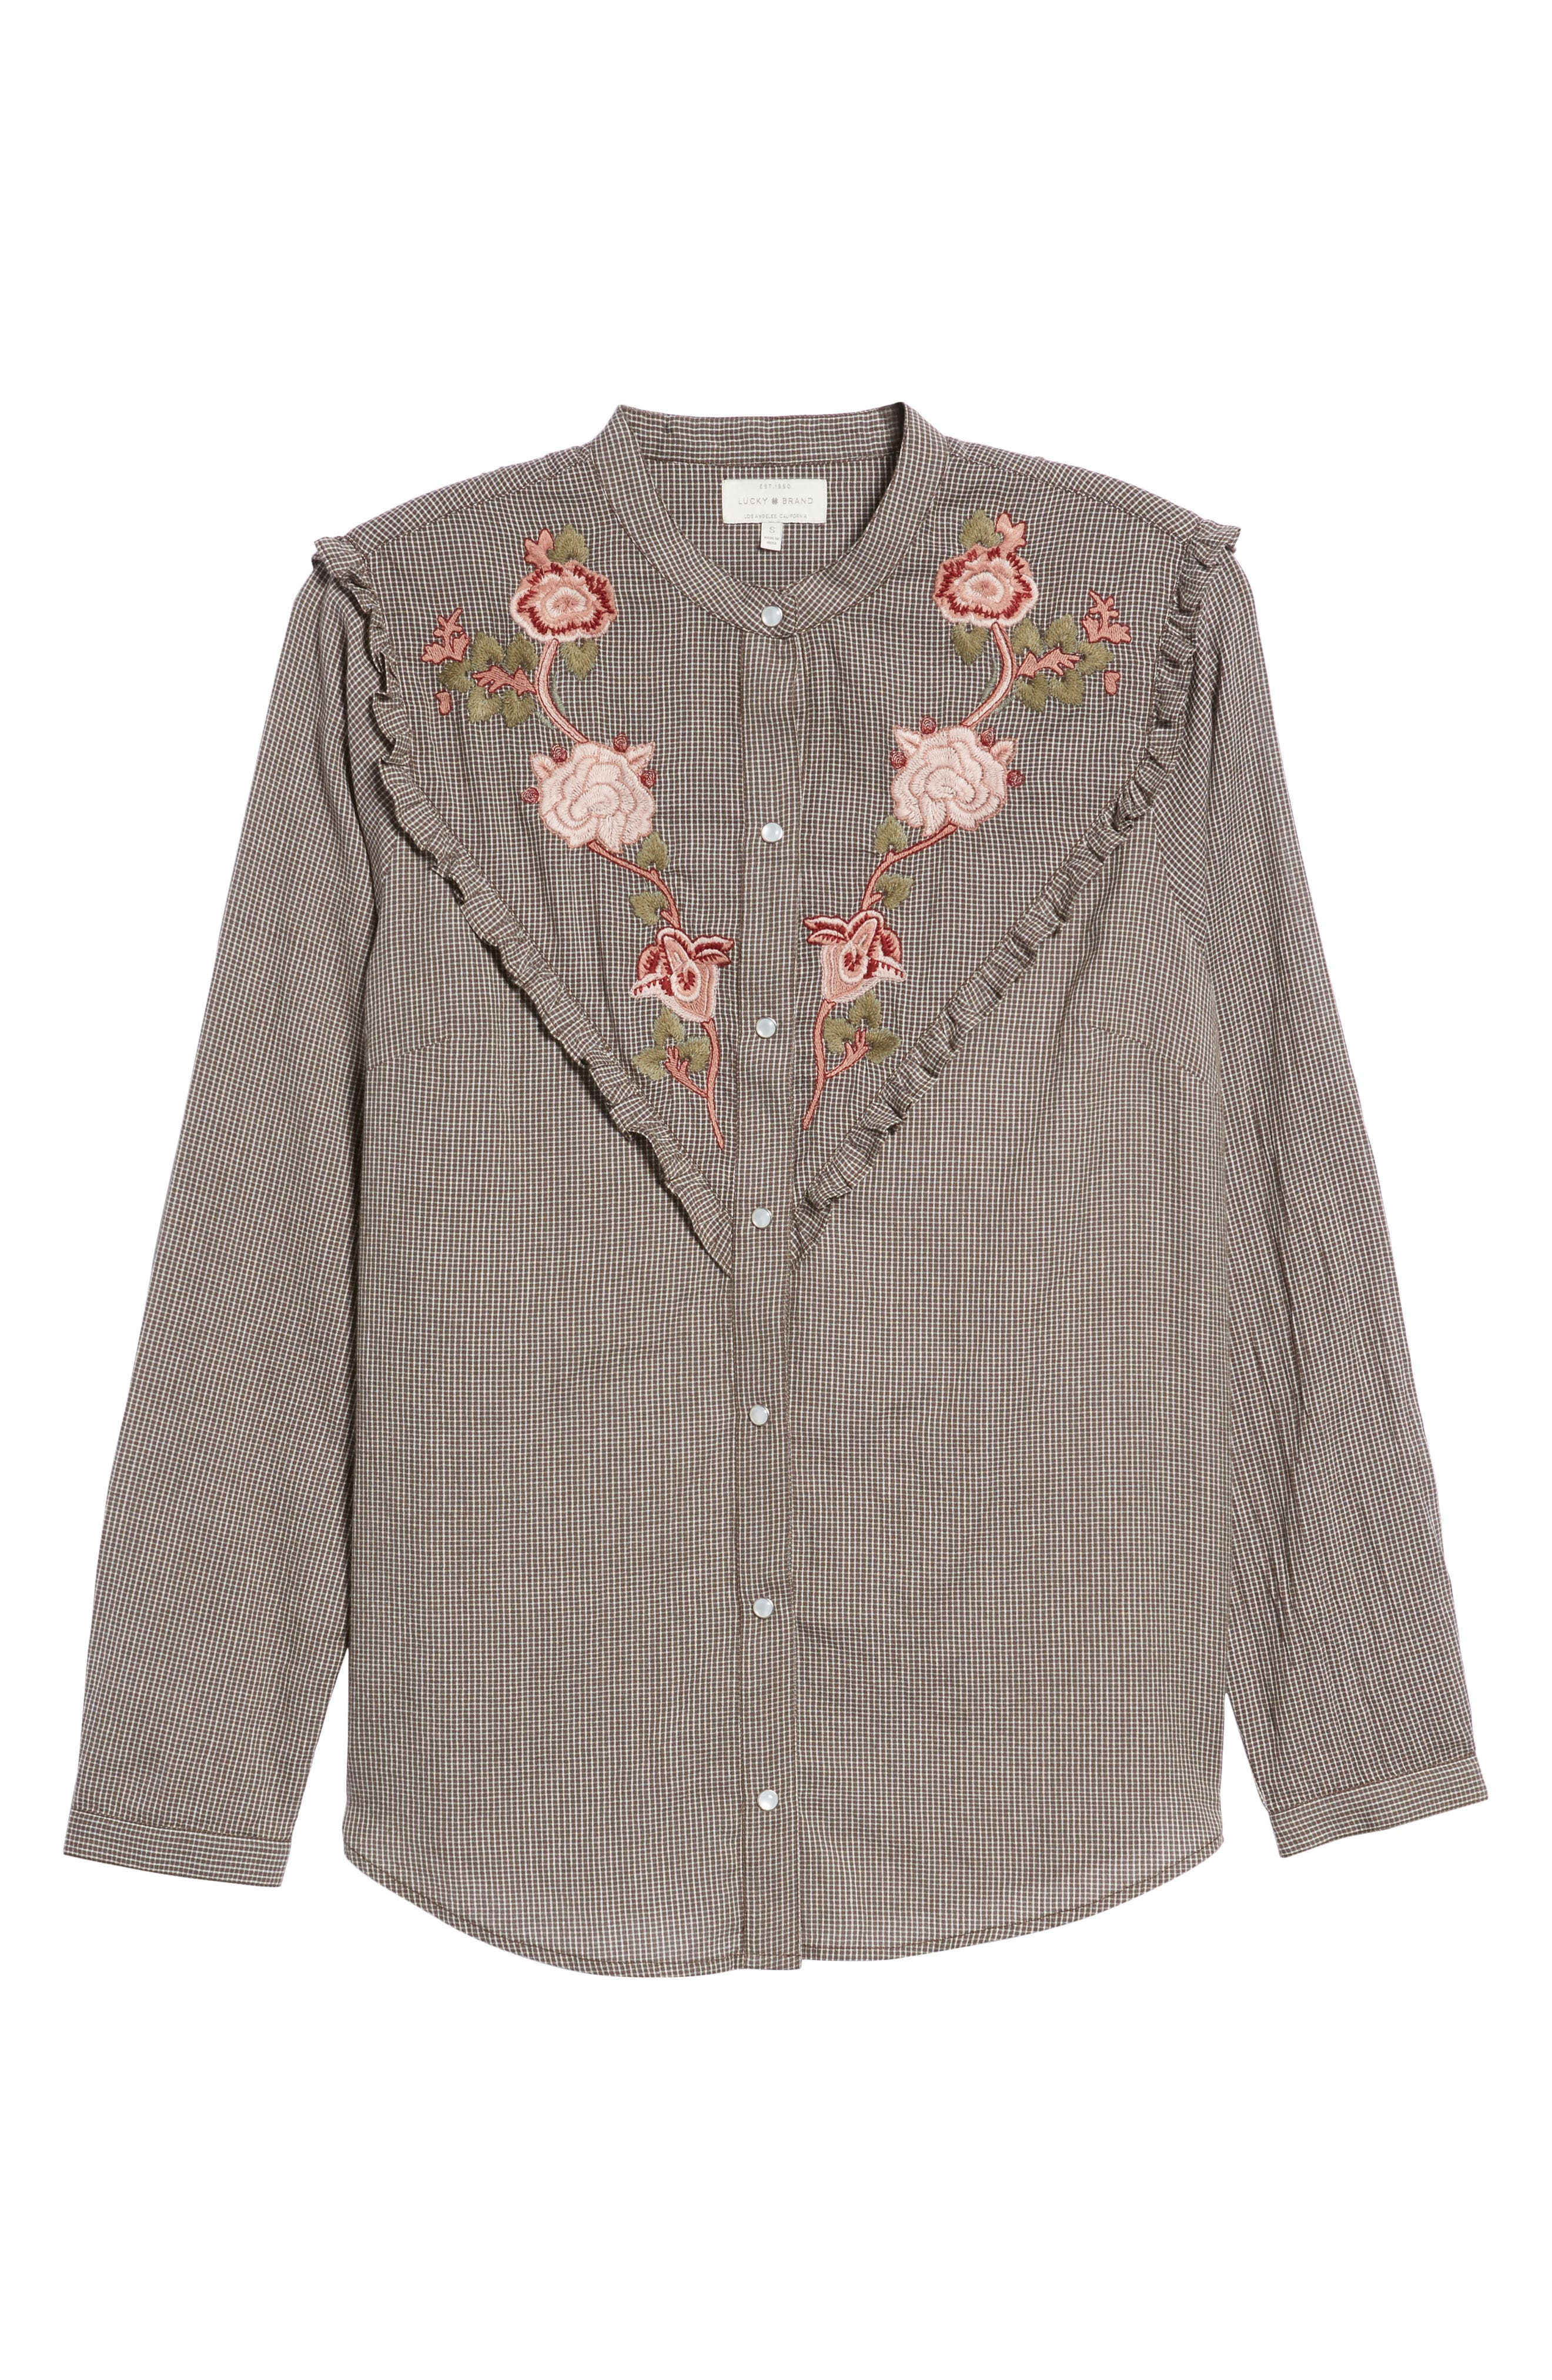 Embroidered Western Shirt,                             Alternate thumbnail 6, color,                             030